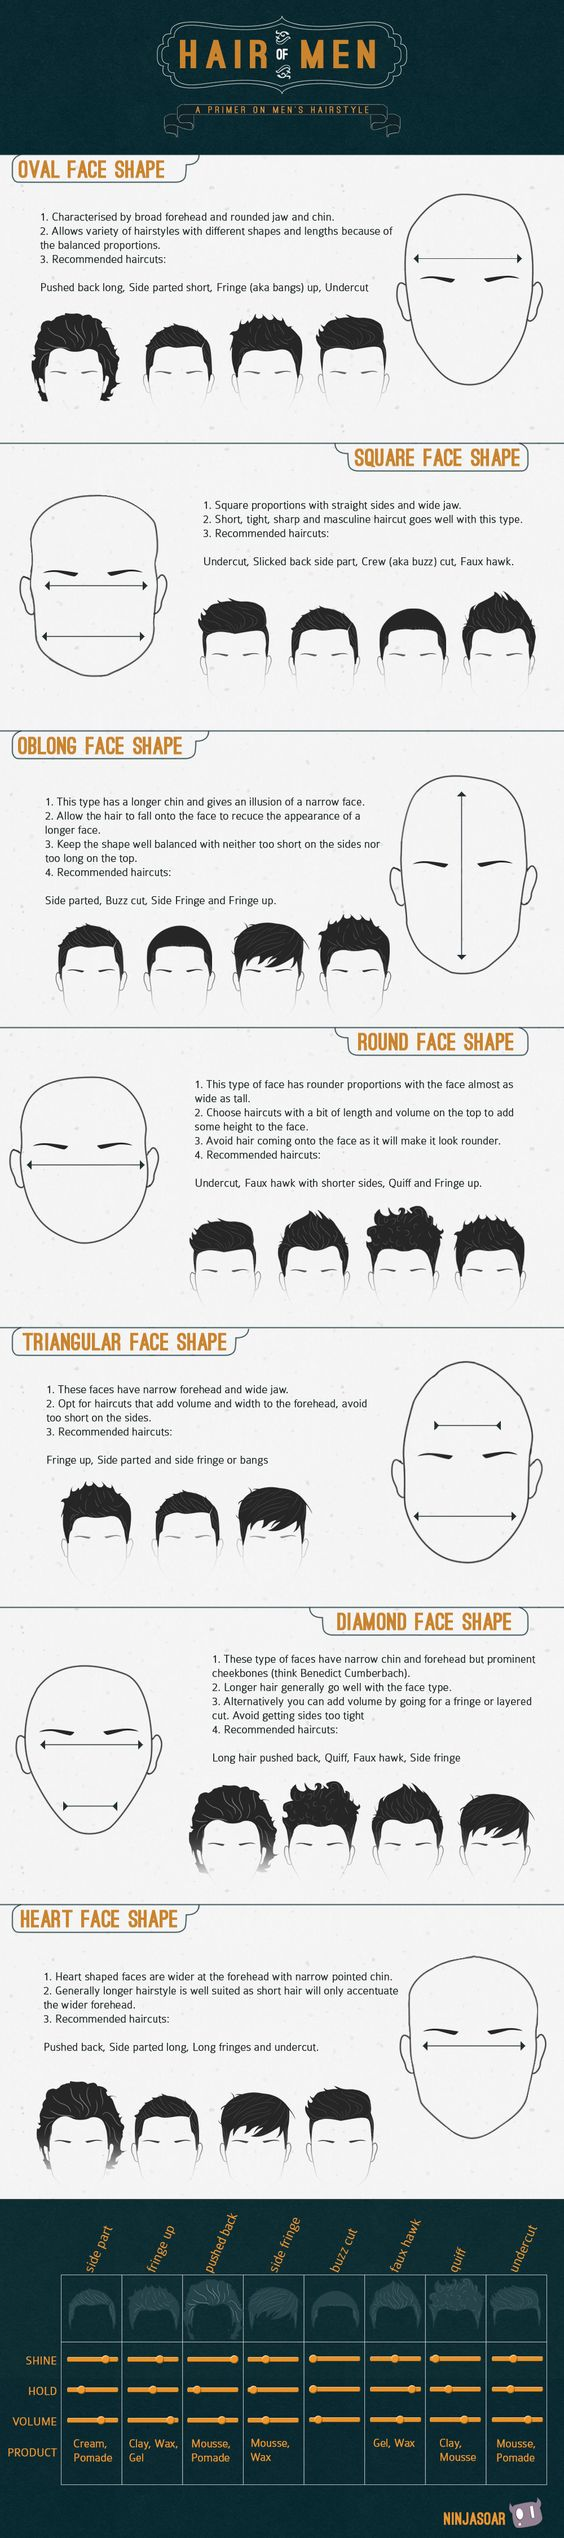 A Guide Finding The Right Haircut   ShortList Magazine